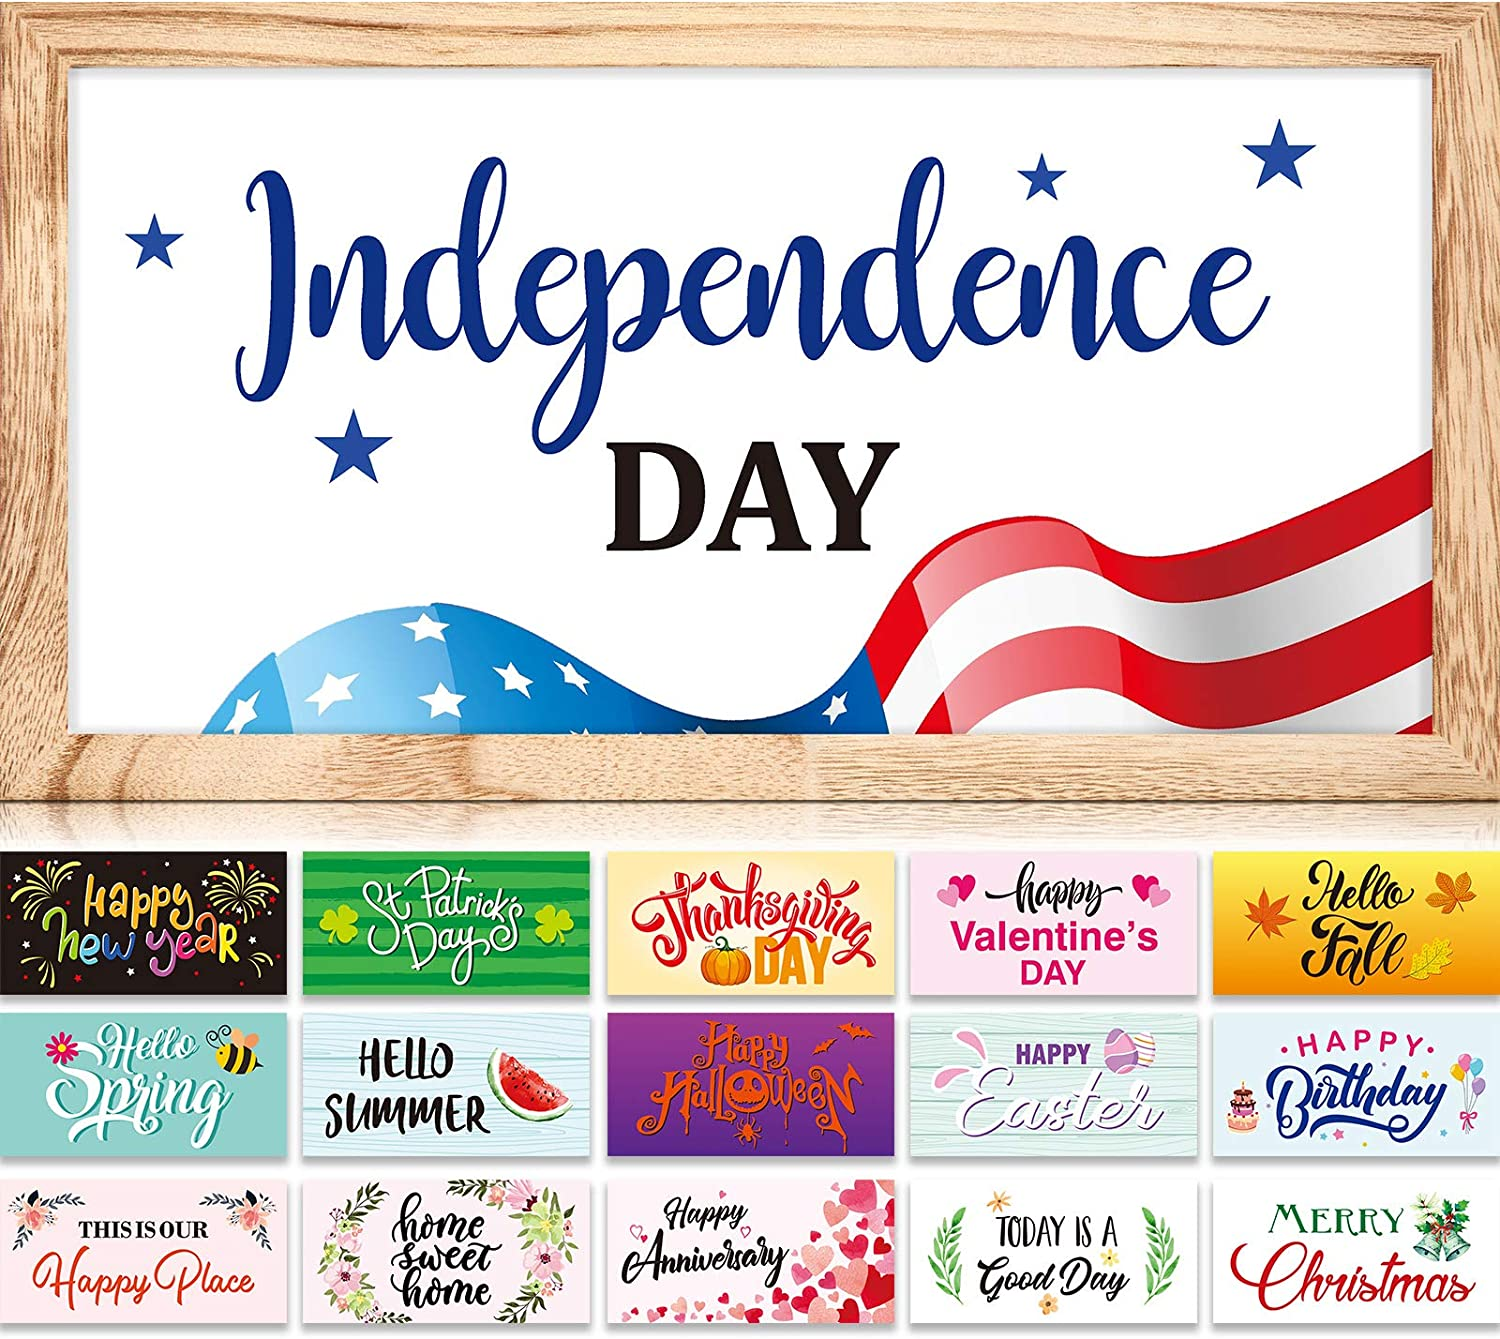 Farmhouse Wood Signs with 16 Interchangeable Seasonal Sayings and Picture Frame Rustic Wooden Wall Hanging Porch Decorations for Easter's Day, Summer, Independence Day, 13 x 7 Inch (Wood Color)